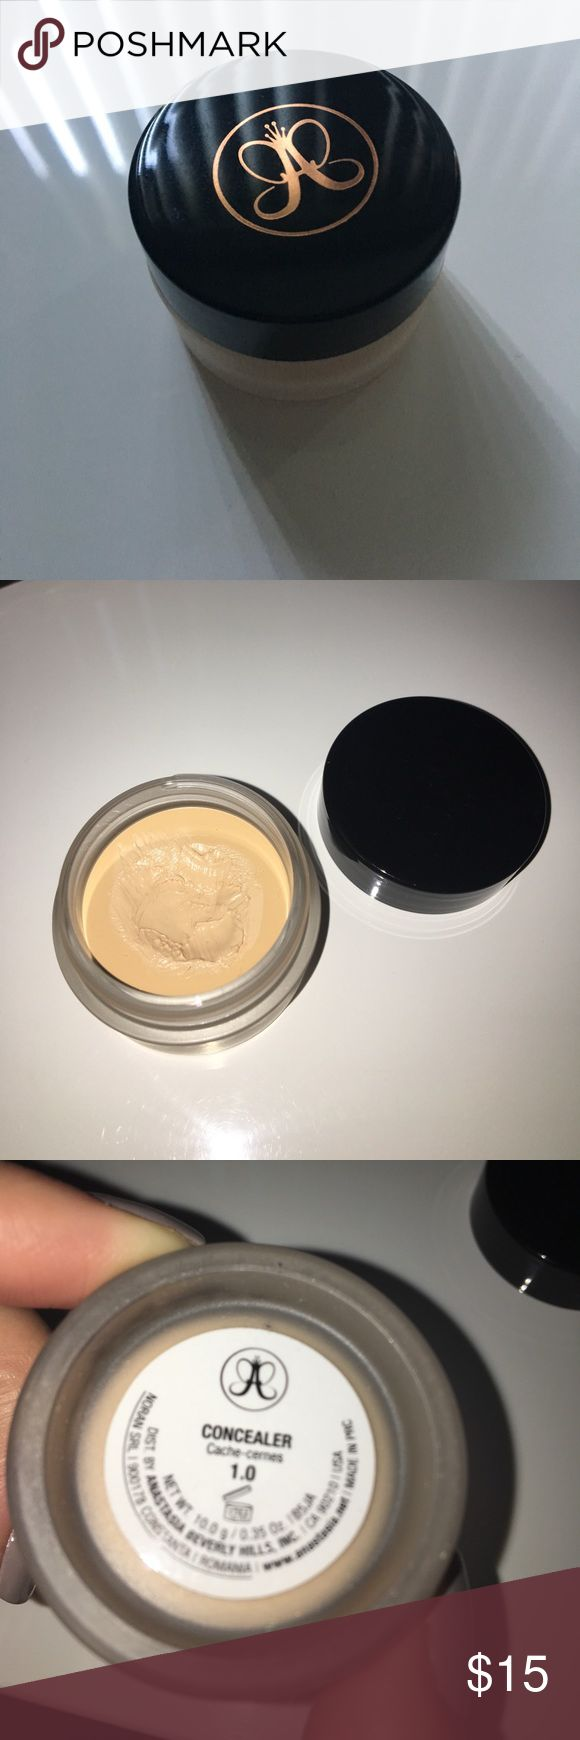 Anastasia Beverly Hills Concealer 1.0 Gently used. Too yellow for my skin tone. Creamy and full coverage concealer. Anastasia Beverly Hills Makeup Concealer